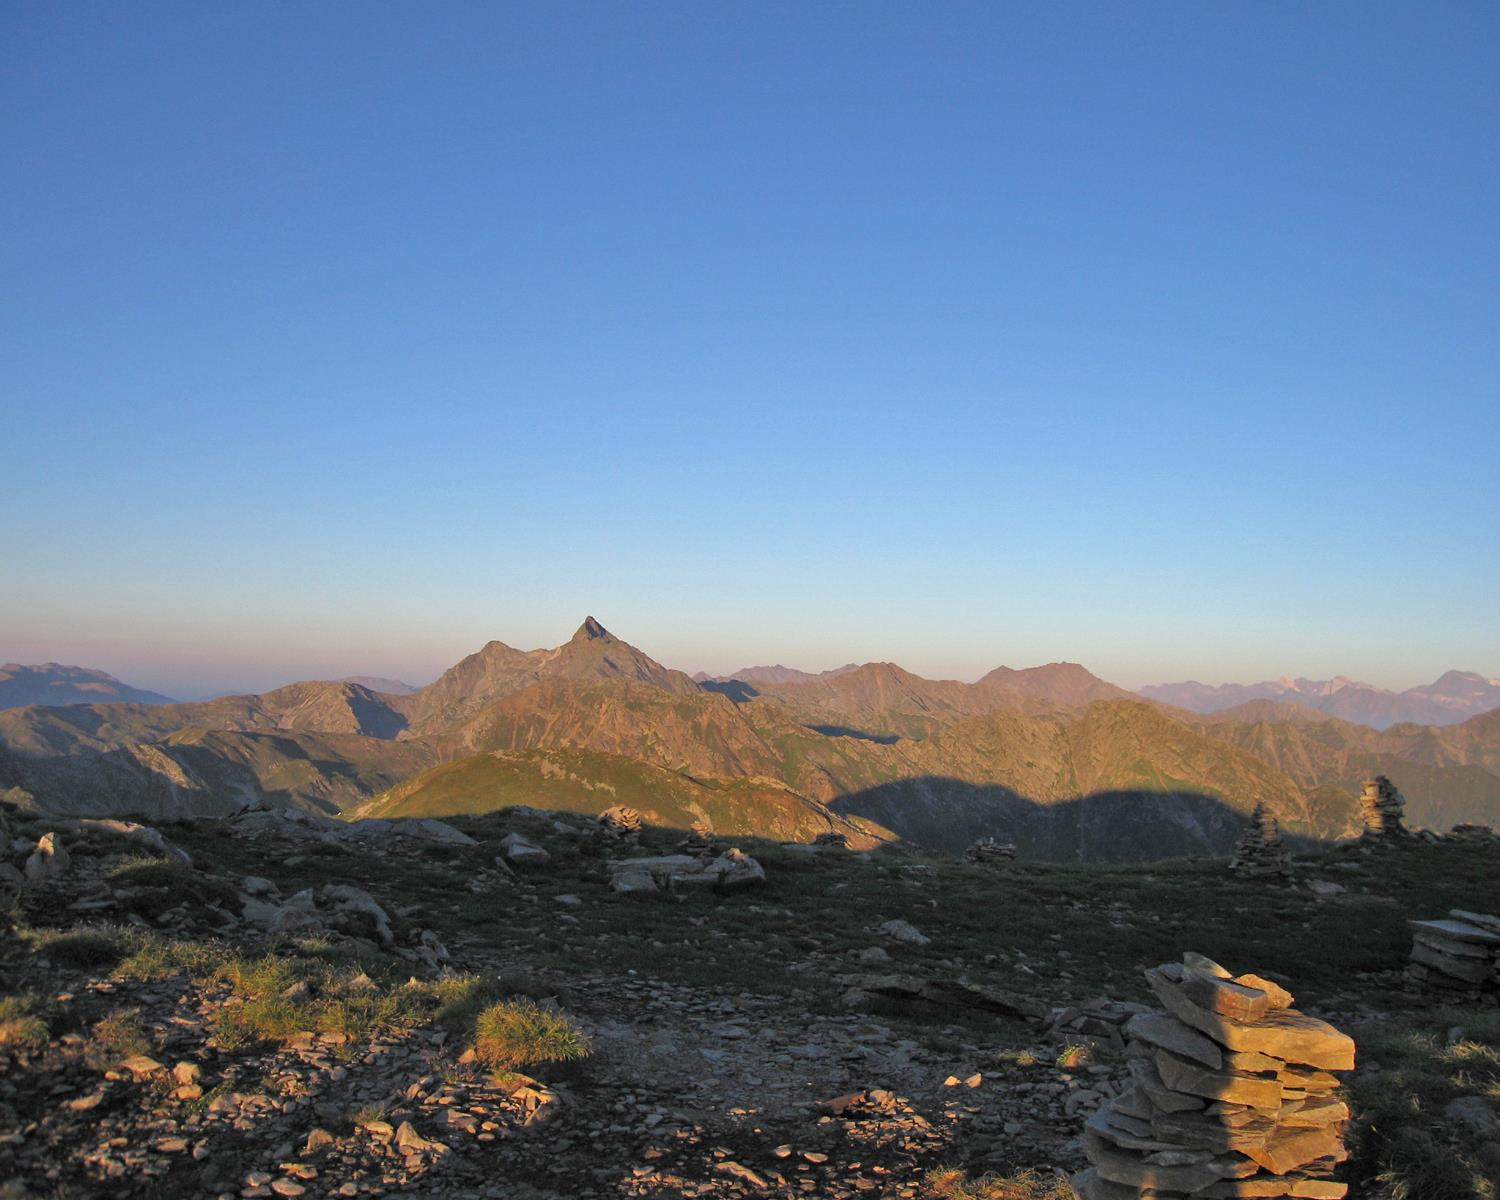 From Sterzing to the Zinseler summit